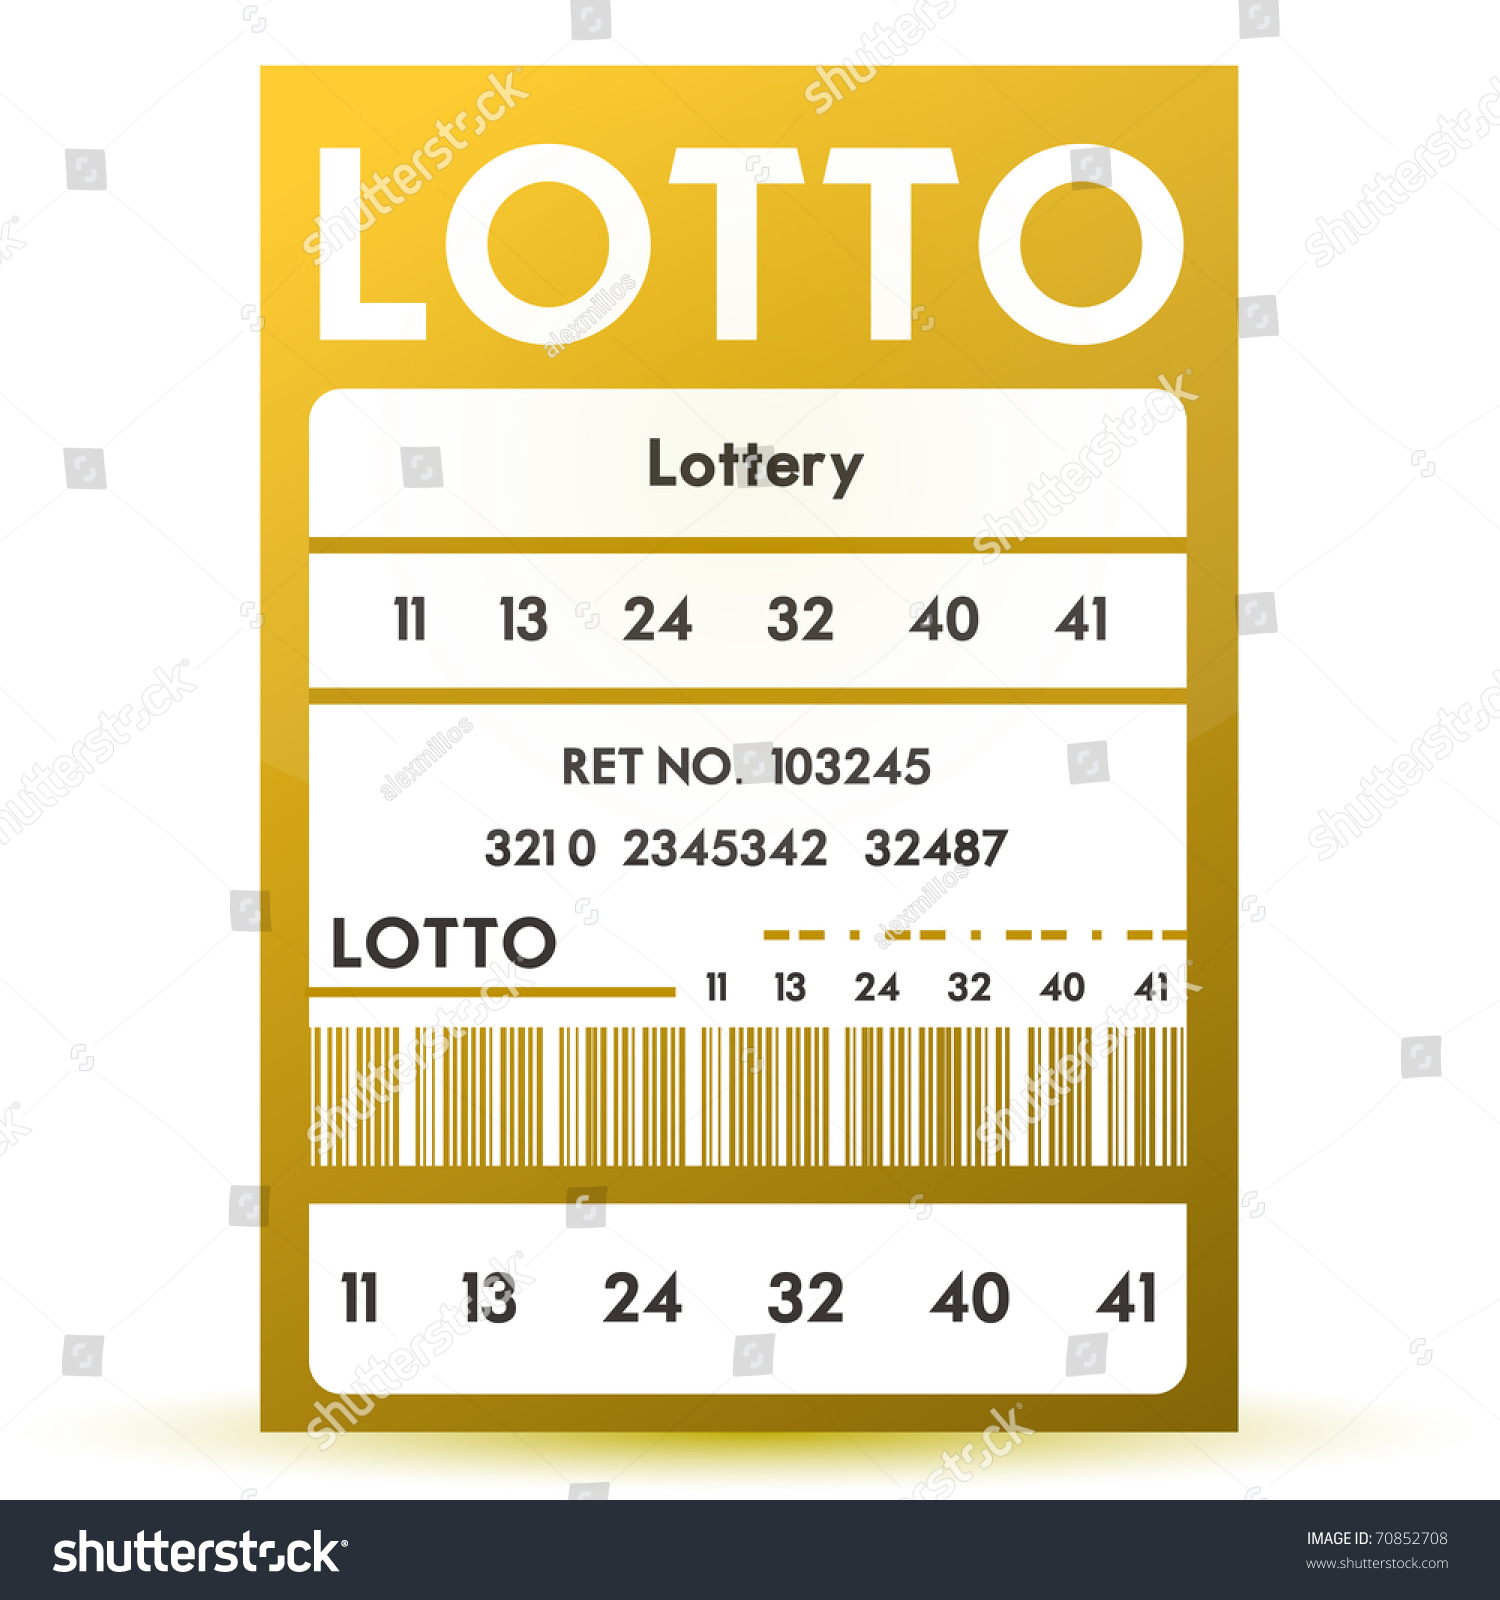 Lotto Ticket Winning Numbers